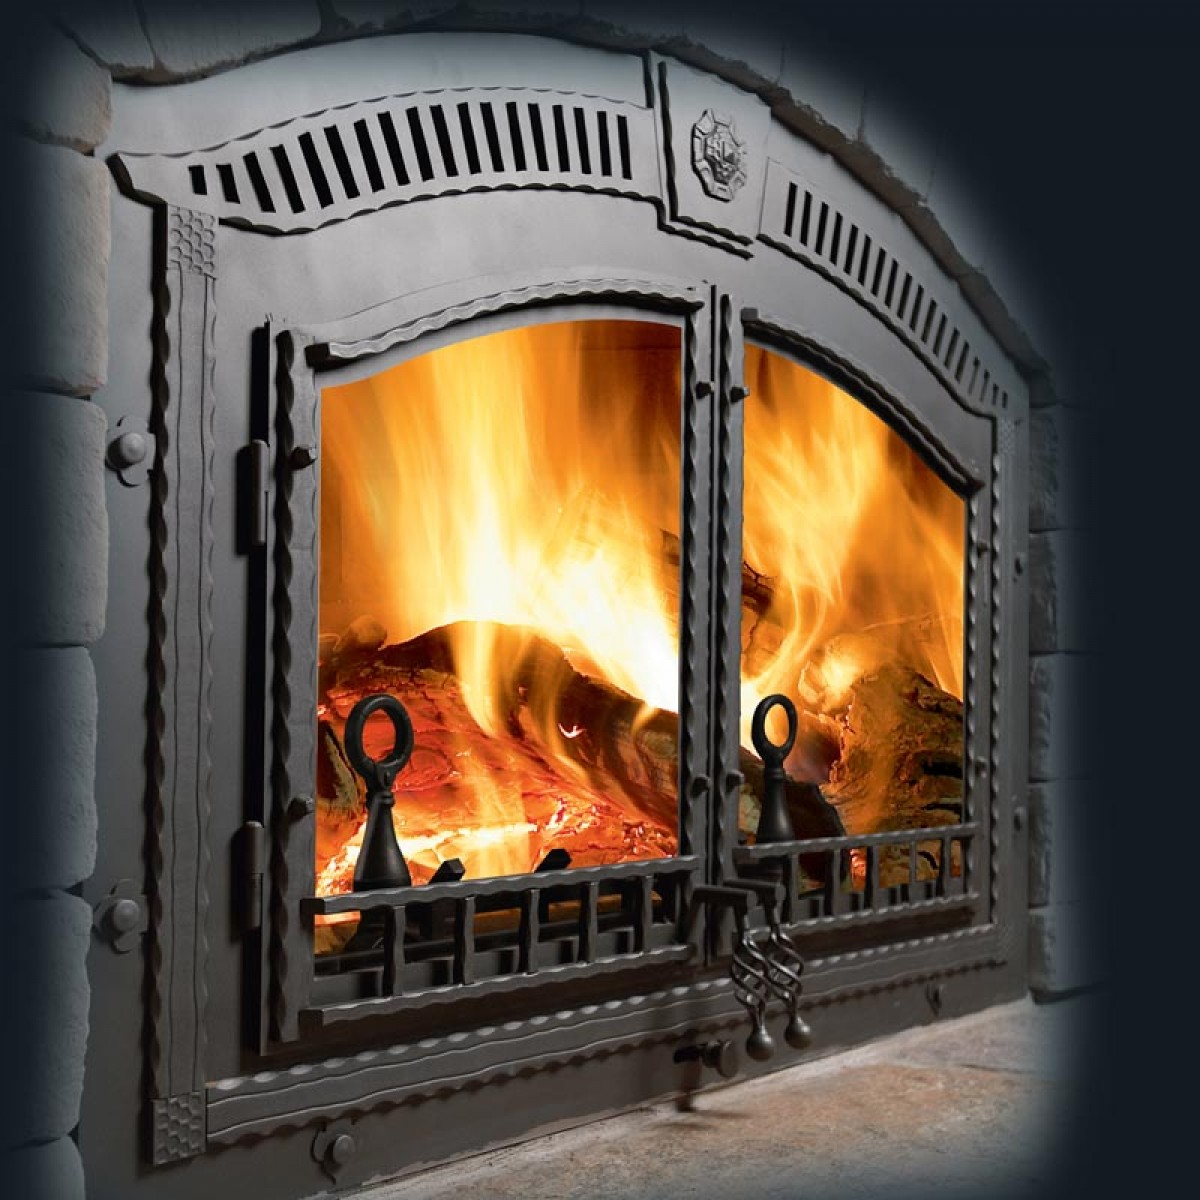 napoleon nz6000 high country wood burning fireplace at ibuyfireplaces rh ibuyfireplaces com us stove 2200 ie medium epa certified wood-burning fireplace insert epa certified wood stove fireplace insert